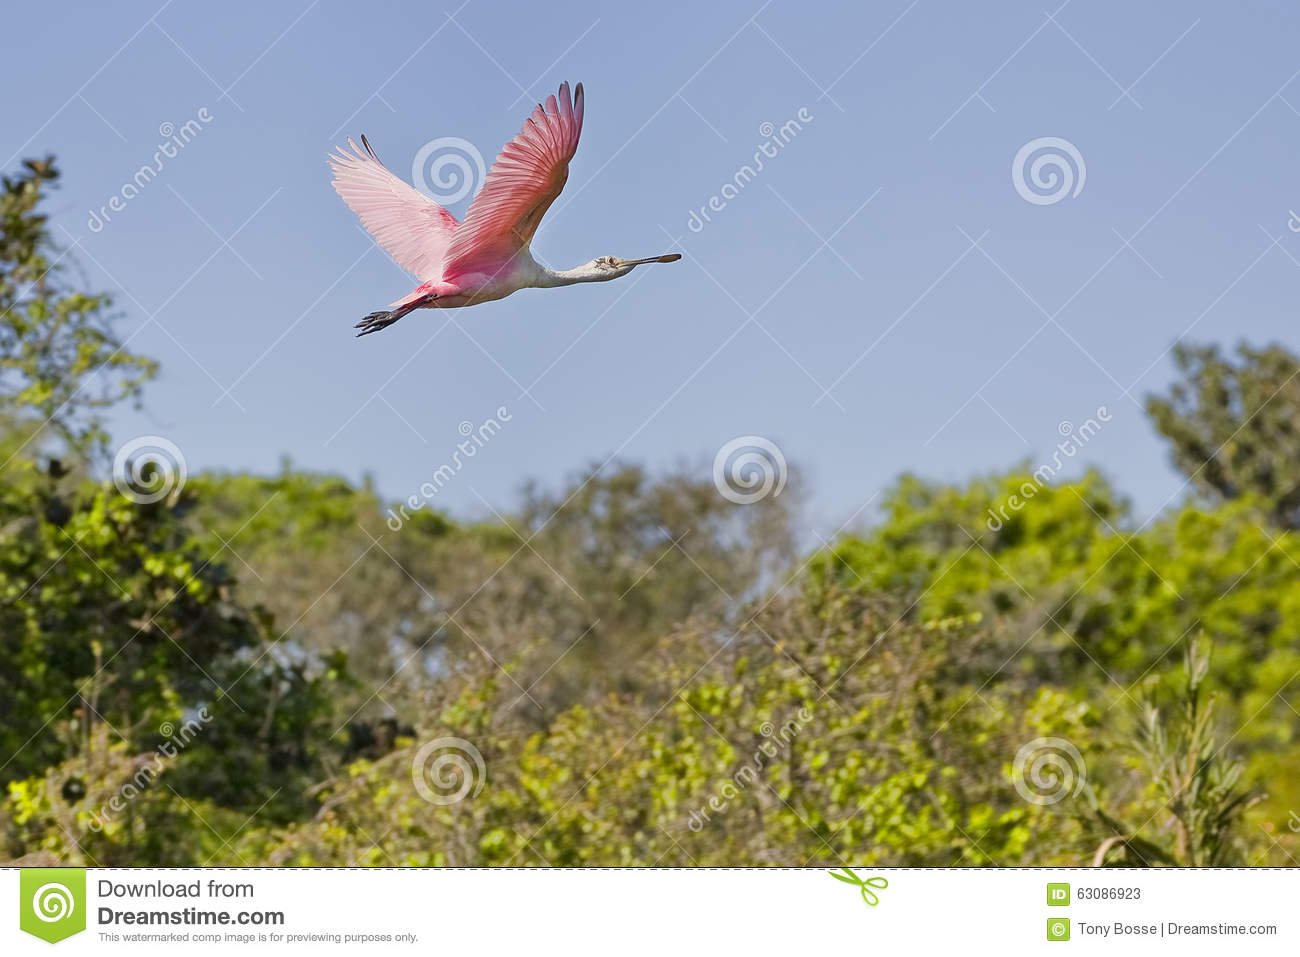 Download Spatule rose en vol image stock. Image du plumage, rose - 63086923